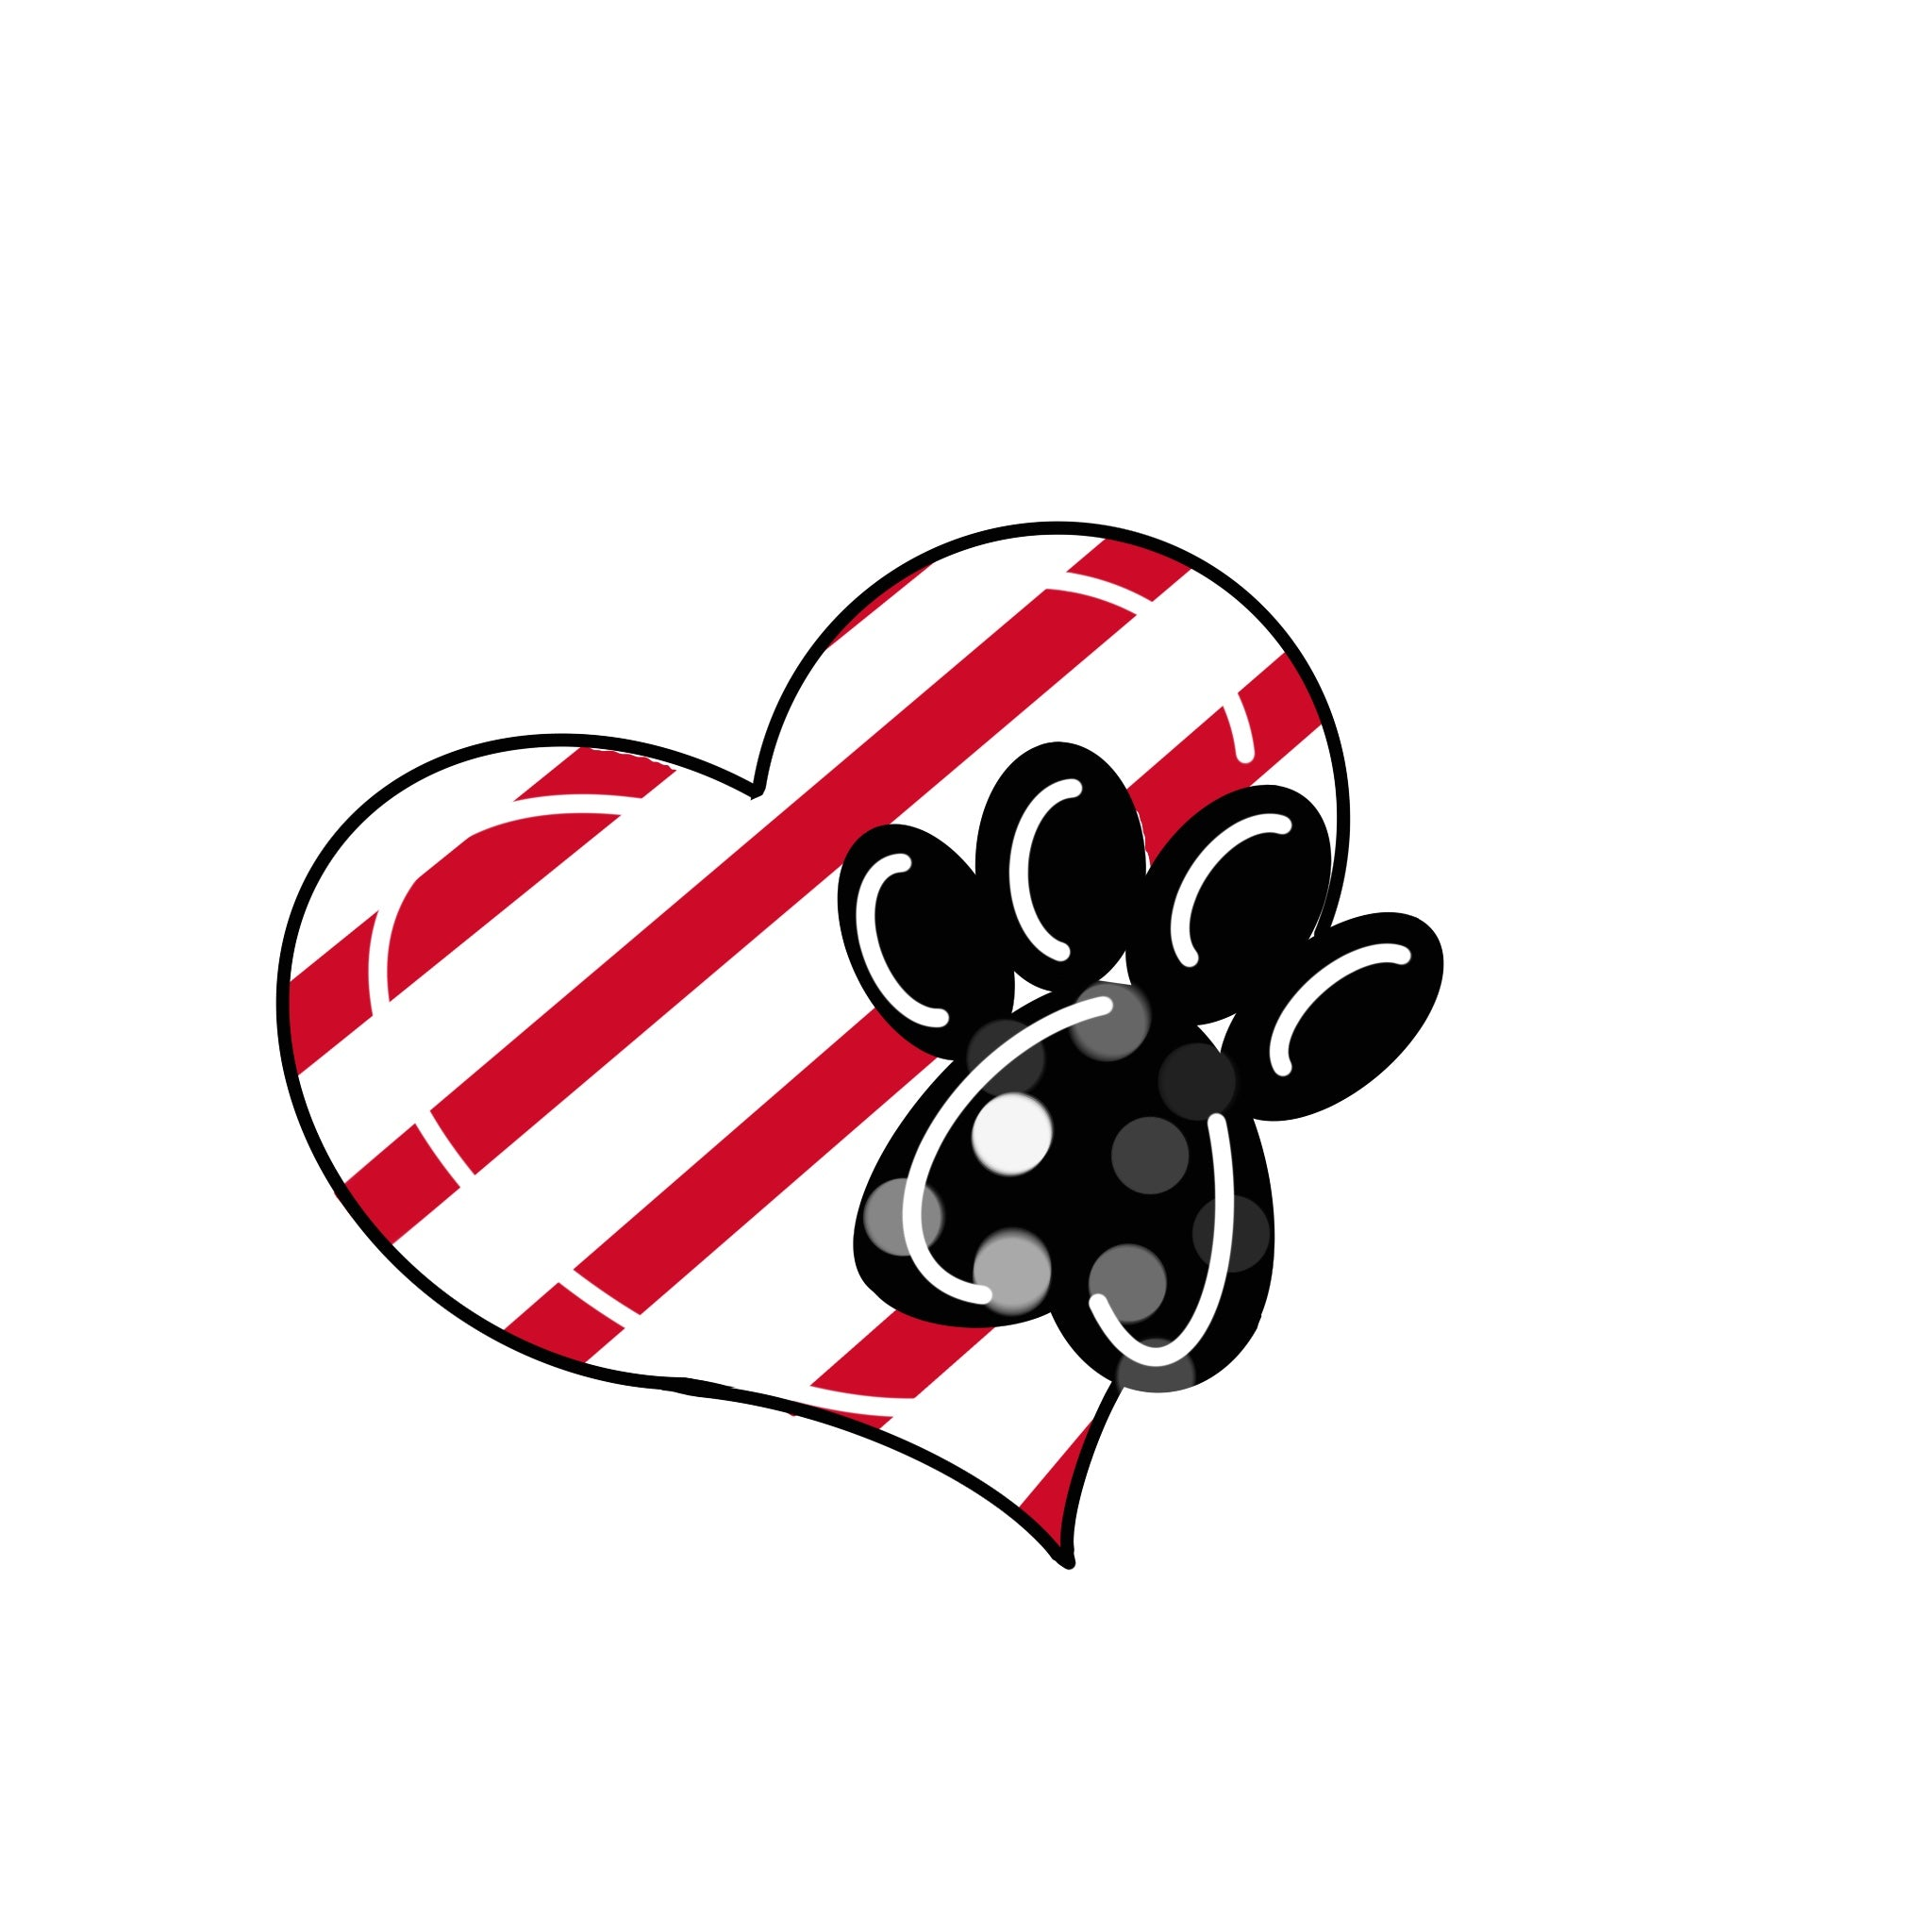 Heart & Paw Print Door Hanger Template & Digital Cut Files